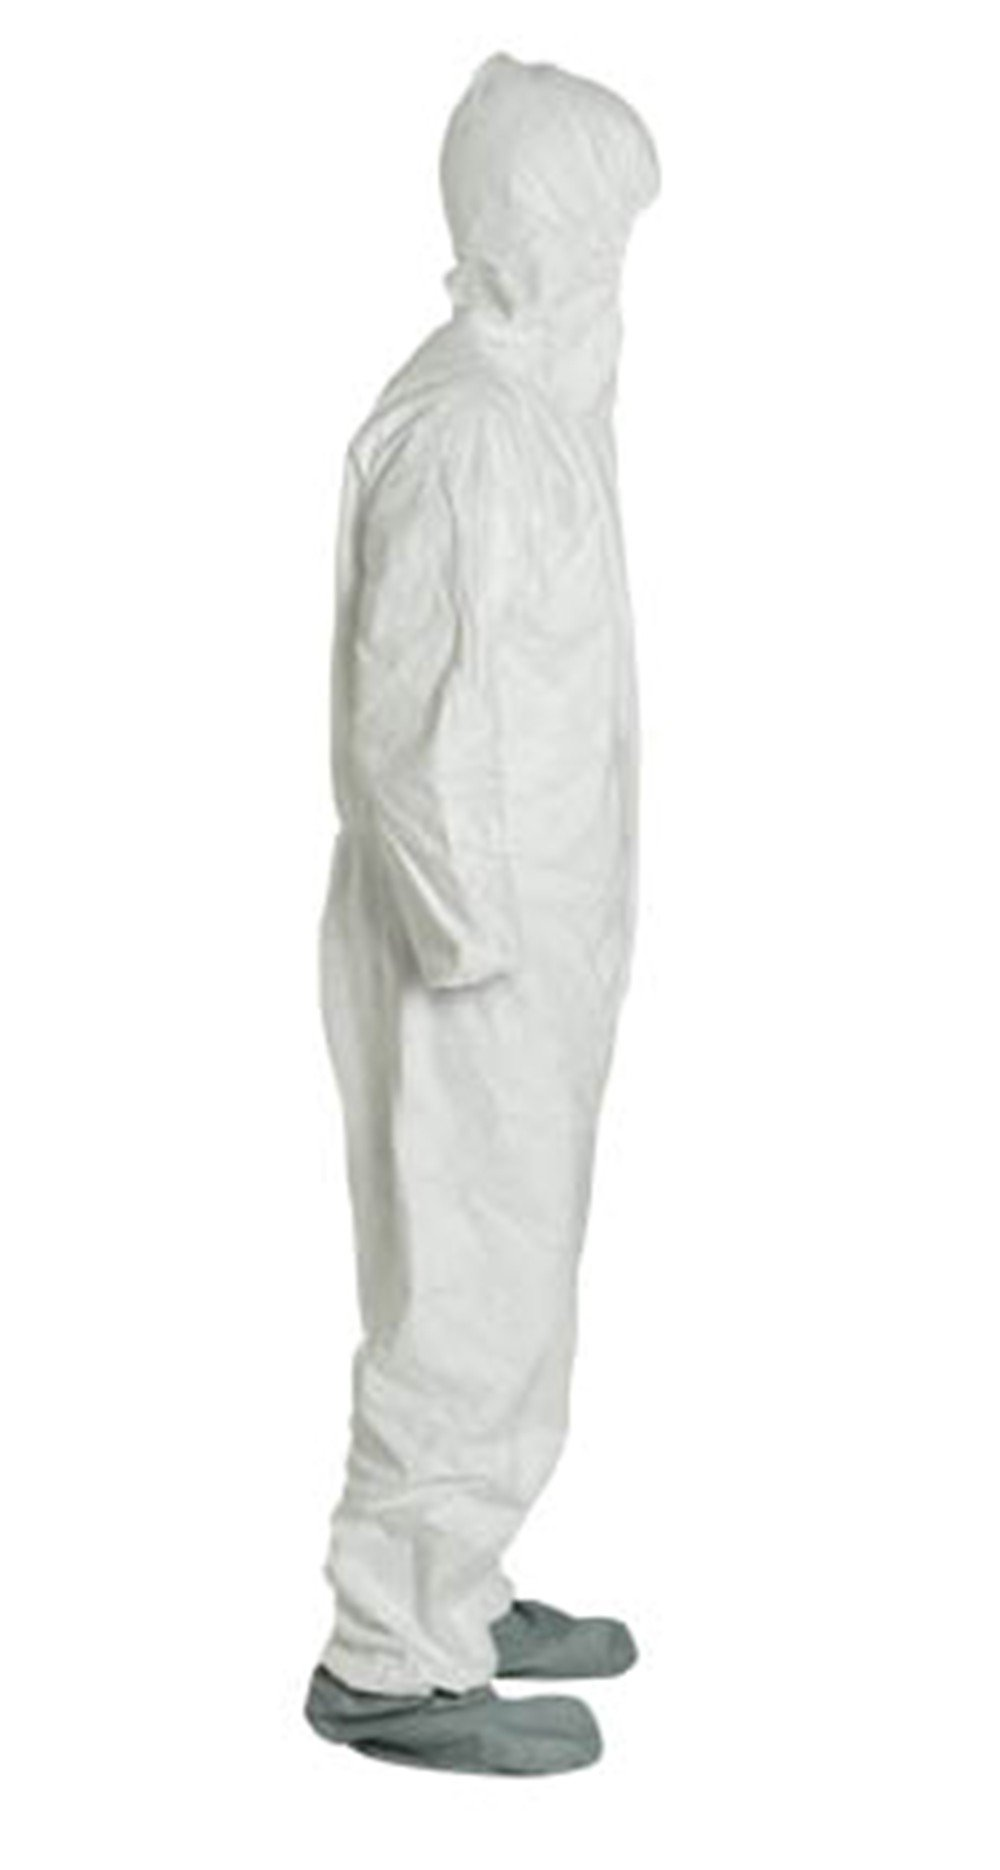 2XL Tyvek Coverall W/ Hood, Zipper, Elastic Wrist & Ankle, With Attached Booties (2XL-25 Suits / 1 Case) TY122S WH-2X-CASE by Tyvek (Image #2)